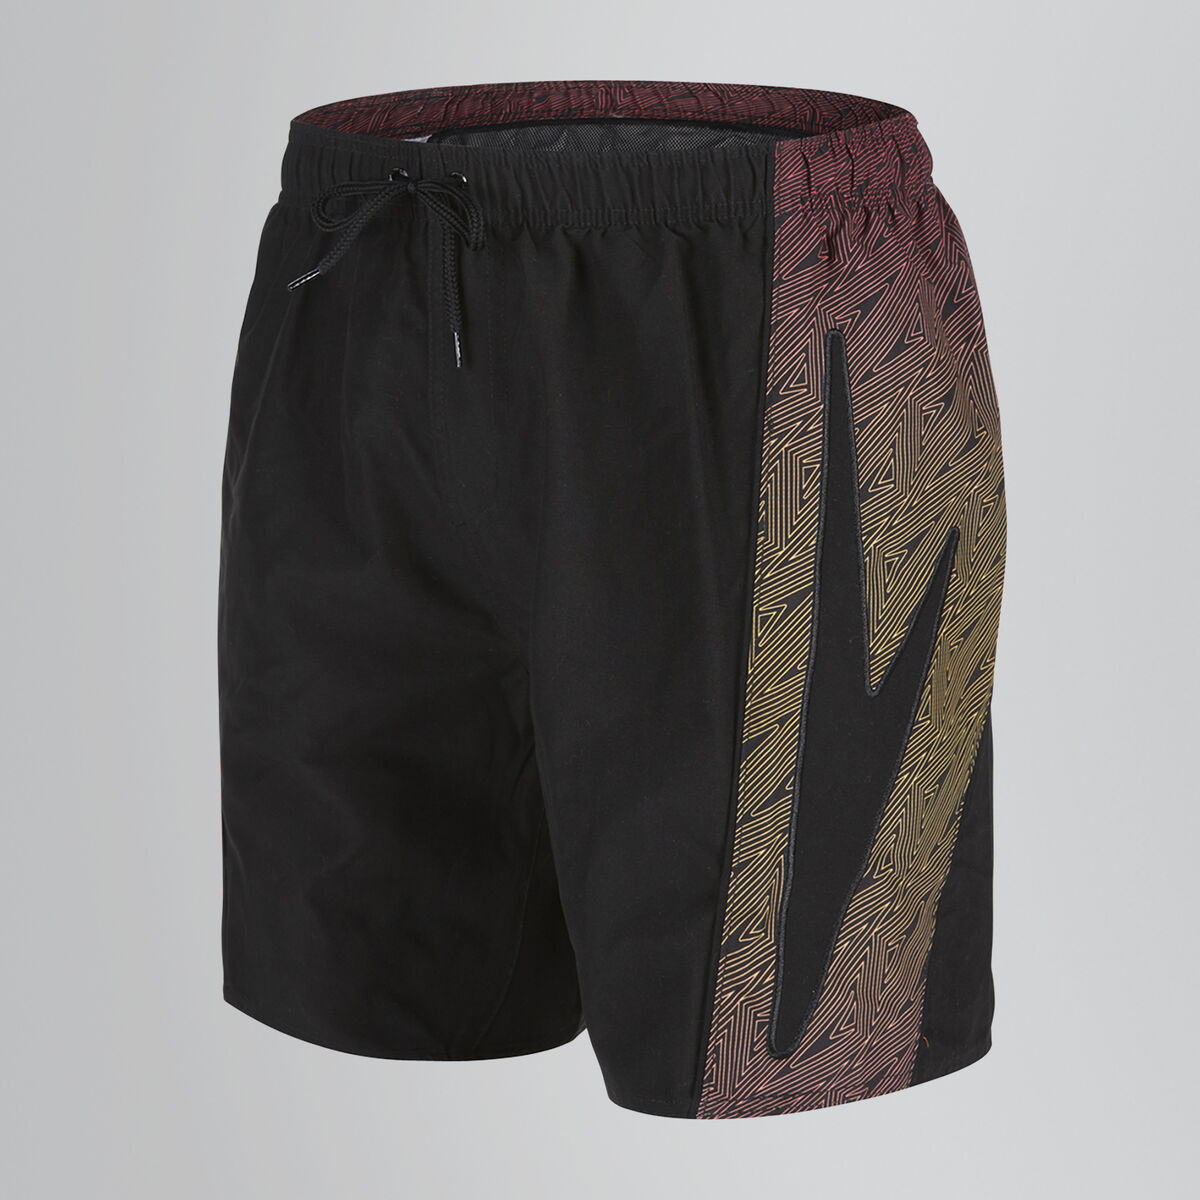 "Sports Print Splice 16"" Swim Short"